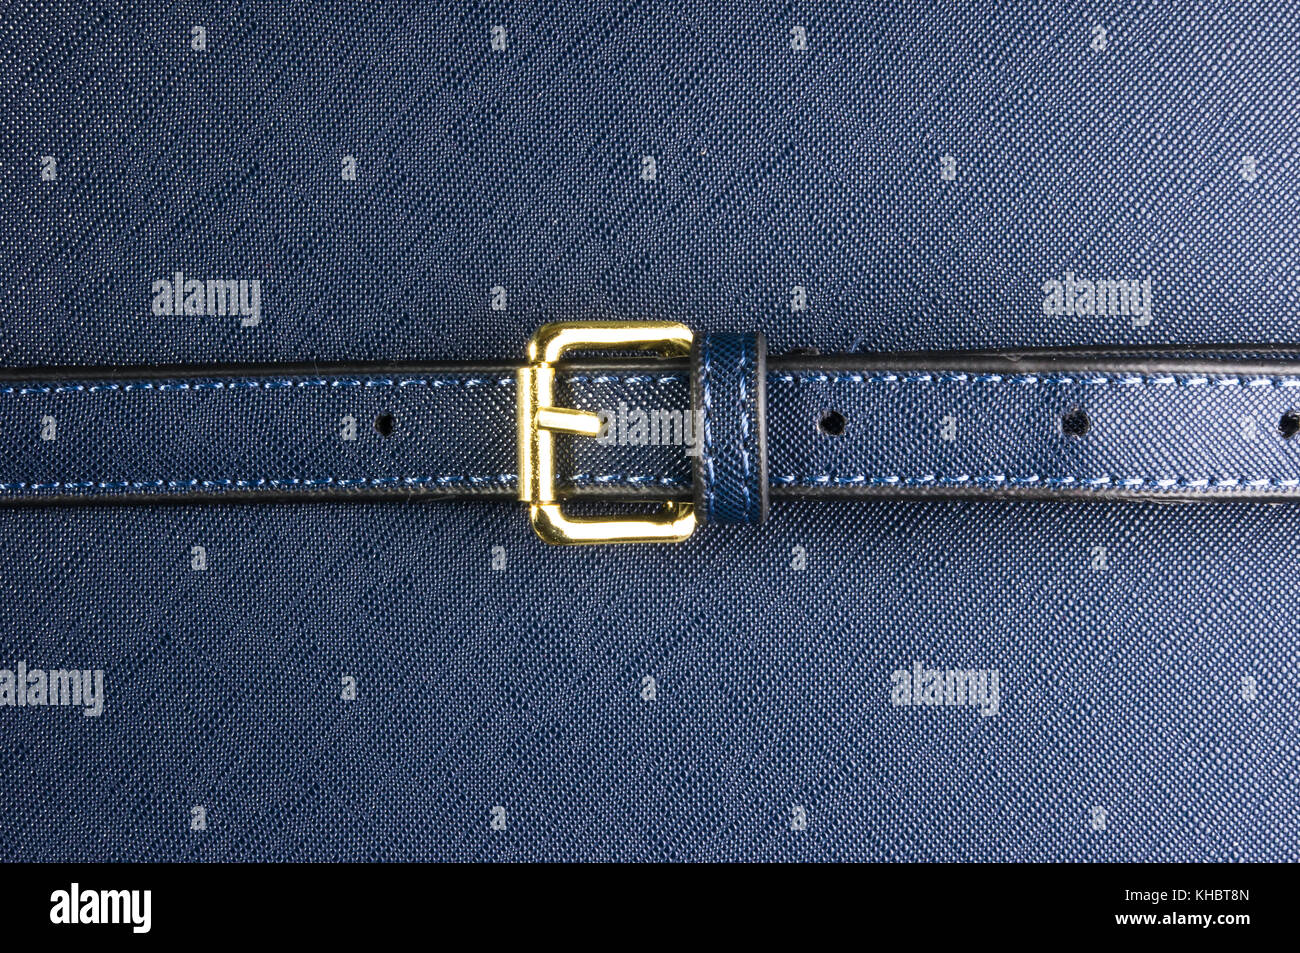 closeup of buckles, clasps, zippers, pockets, fasteners, fittings and seams on the blue hand bag Stock Photo